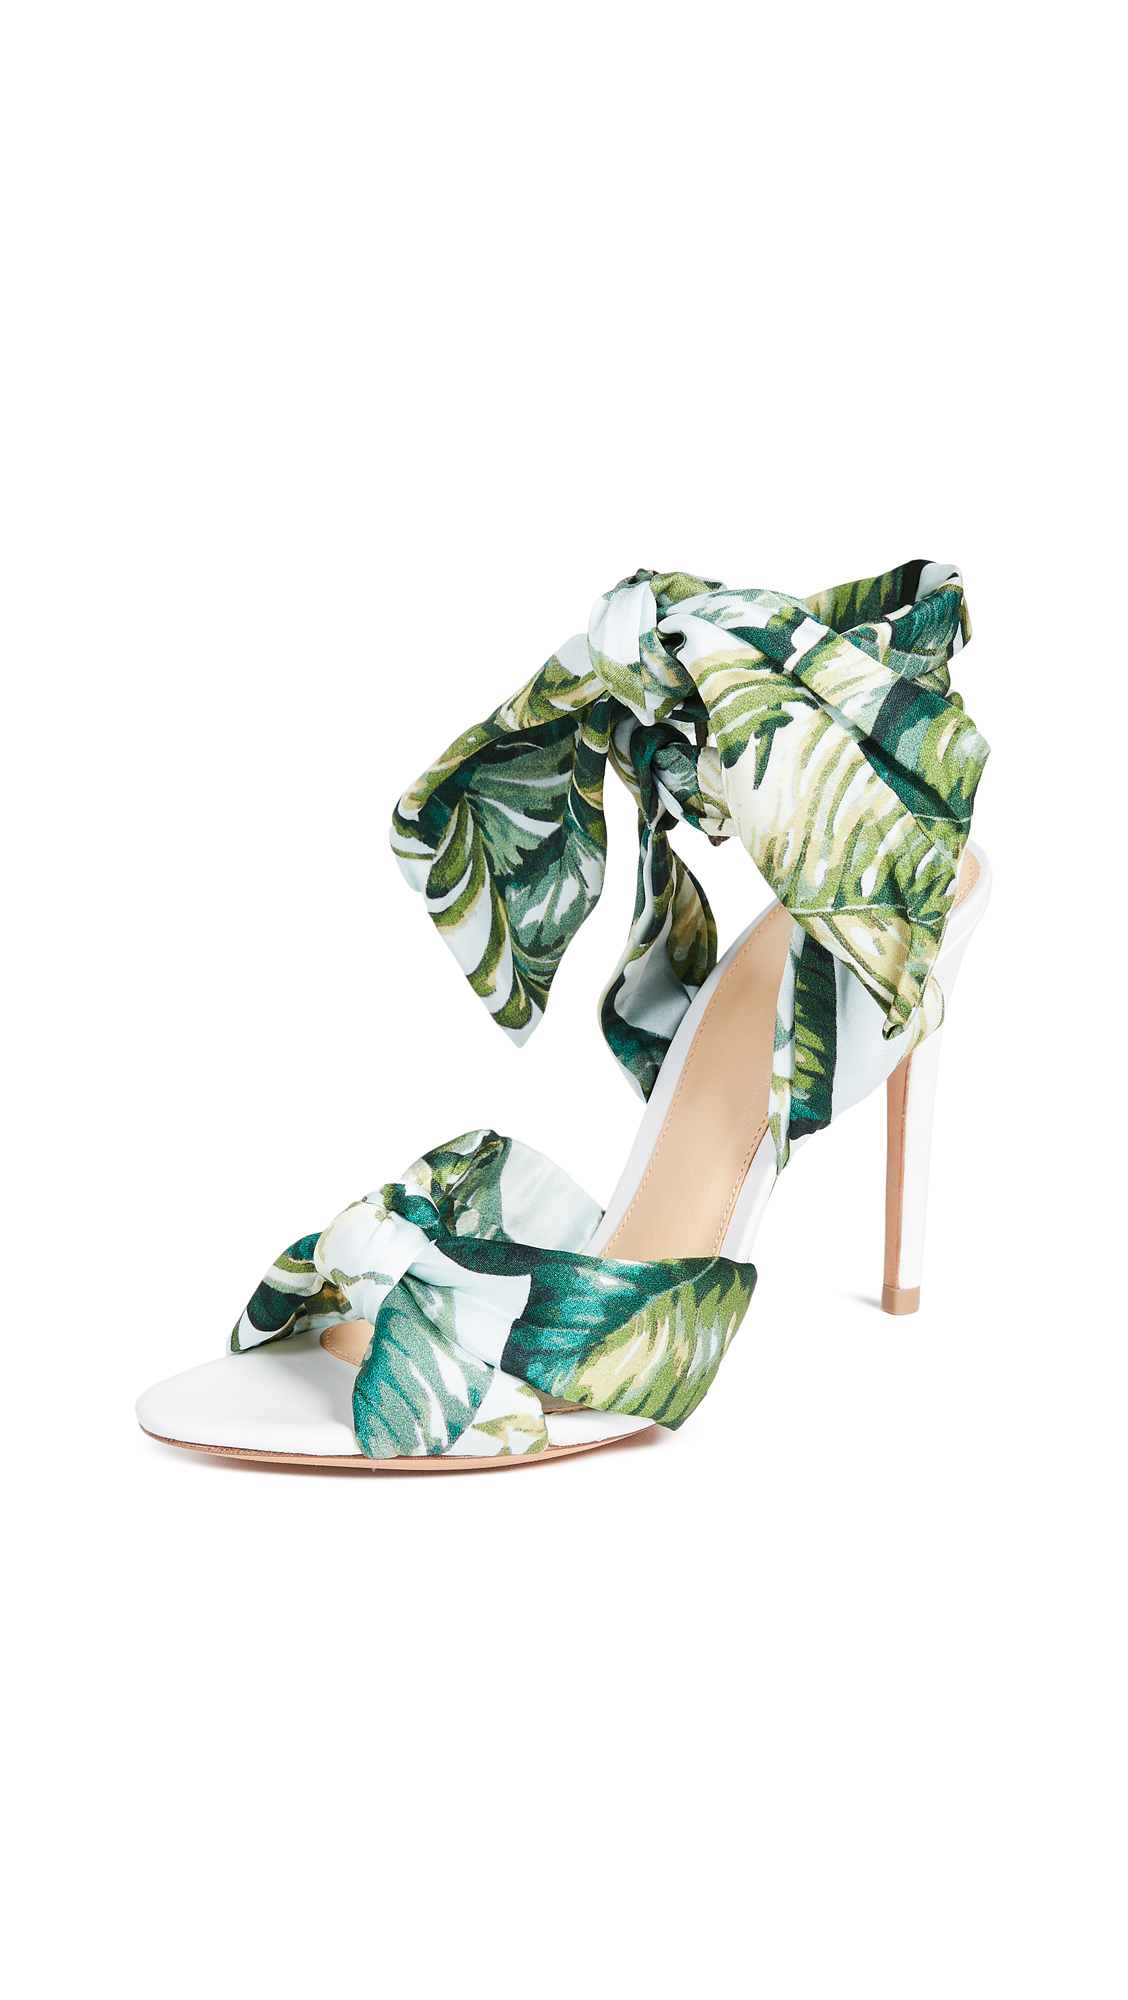 Alexandre Birman Kacey 100mm Wrap Sandals - Green/White